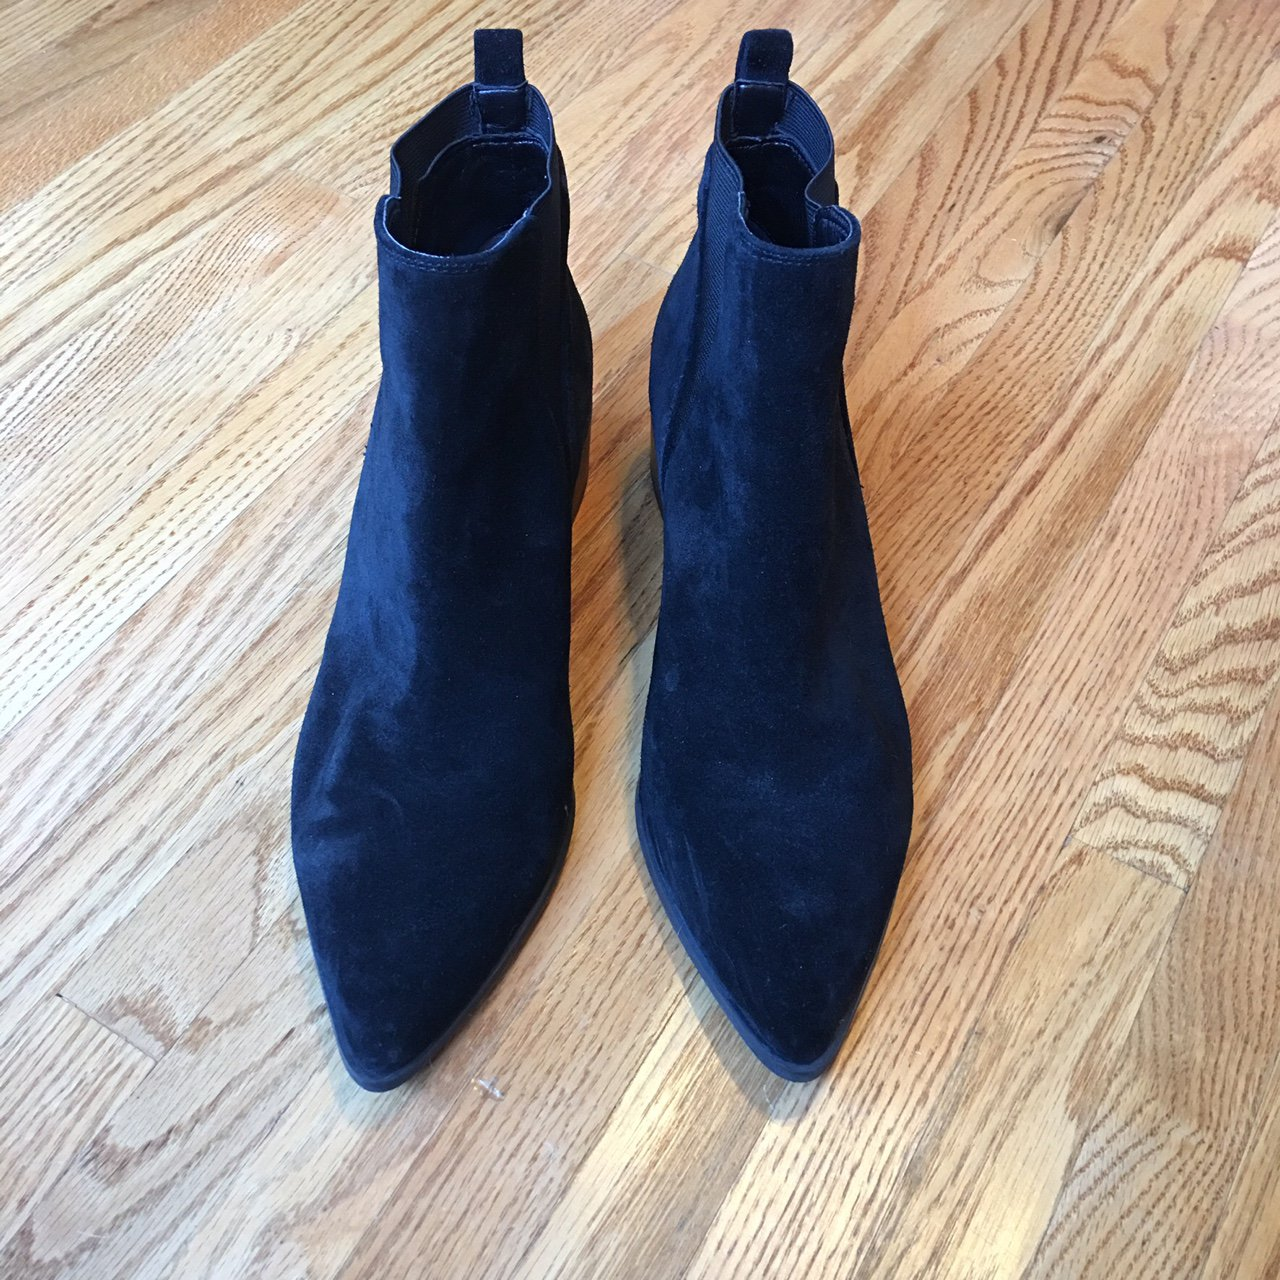 c21526b0f46 Marc Fisher Suede Chelsea Ankle Boots. Black. 8.5 US. Worn a - Depop